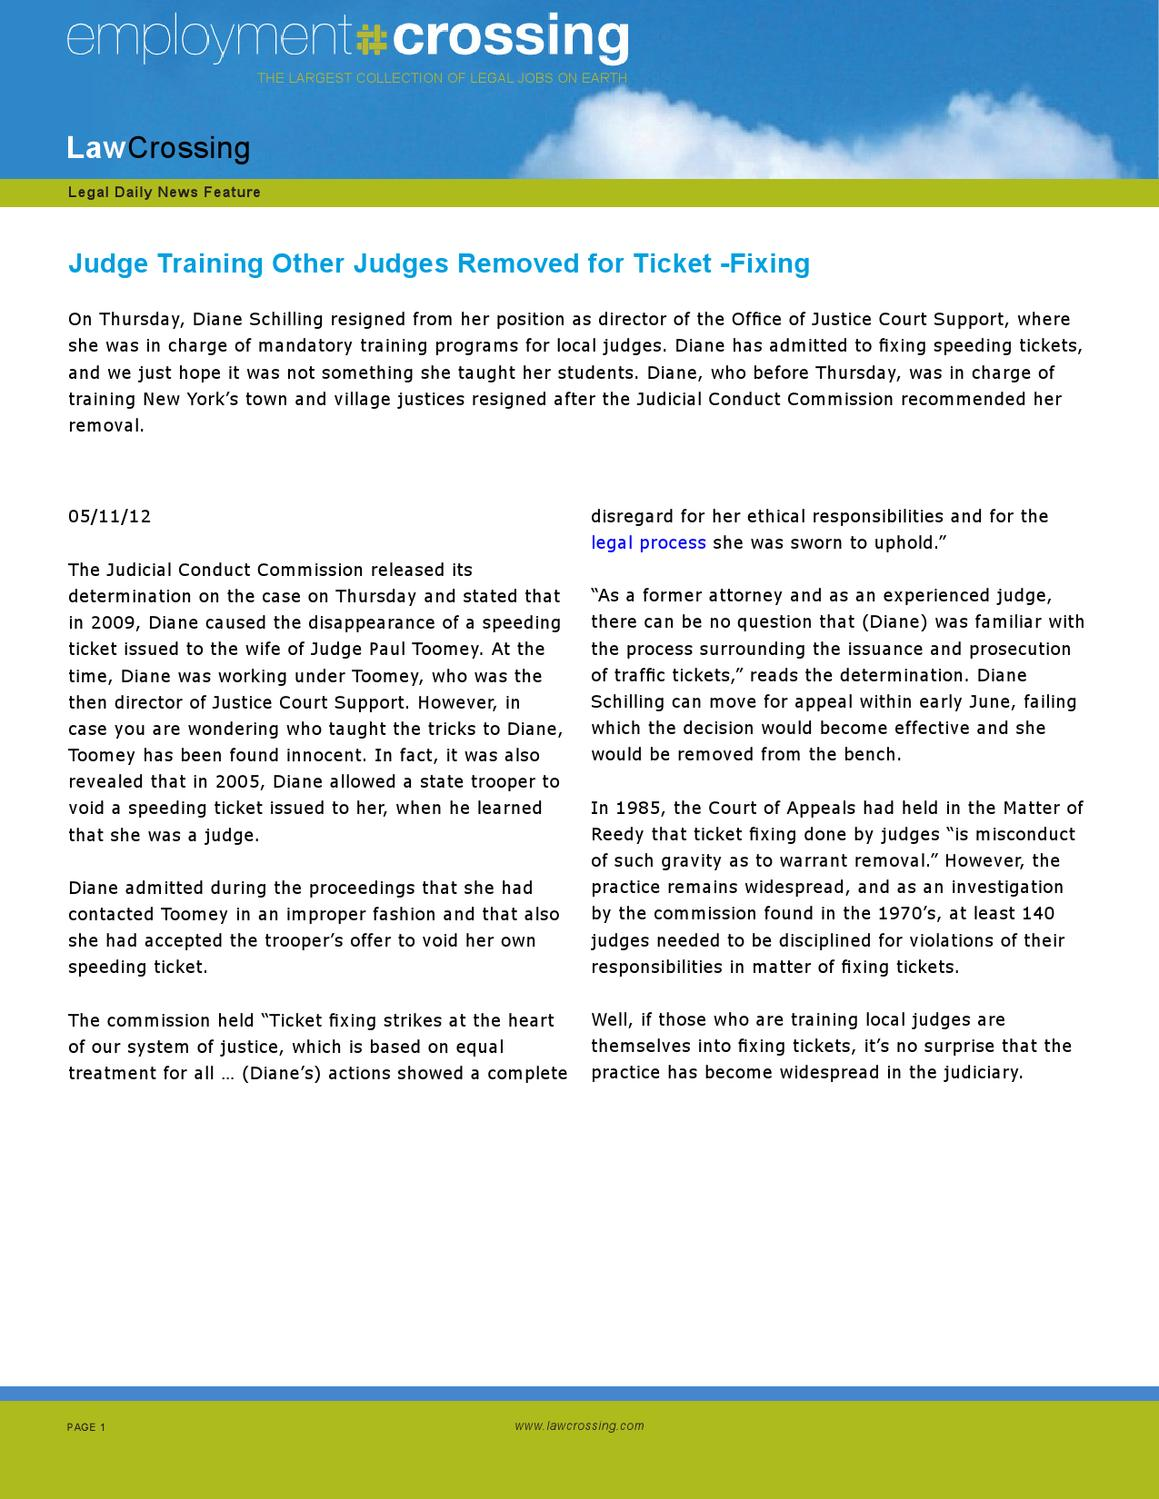 Judge Training Other Judges Removed for Ticket -Fixing by